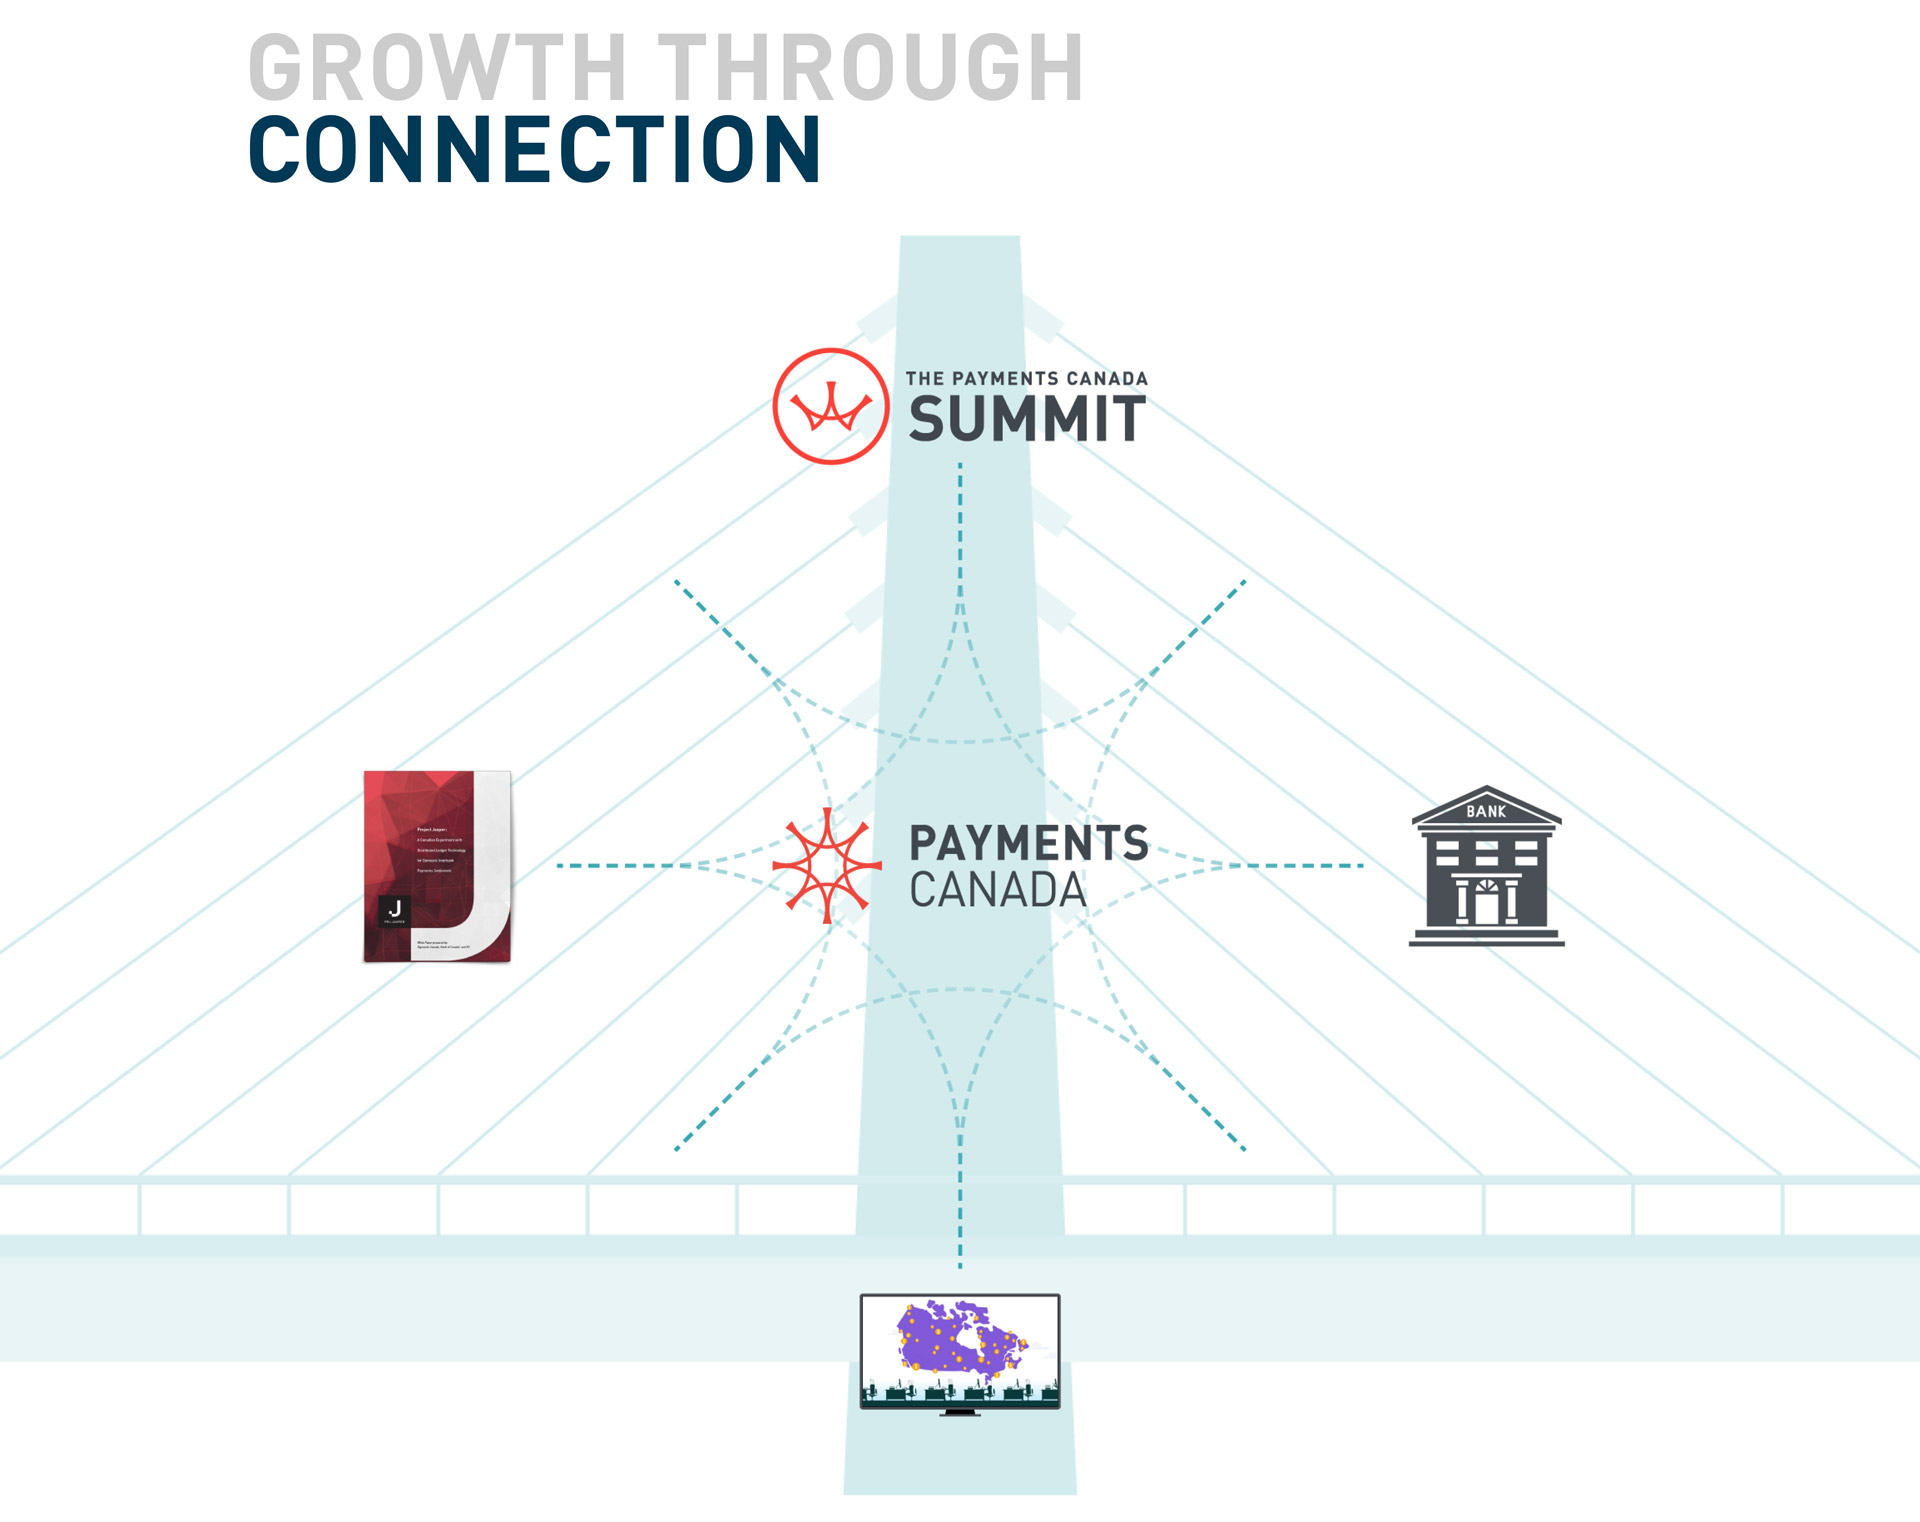 Payments Canada Infographic